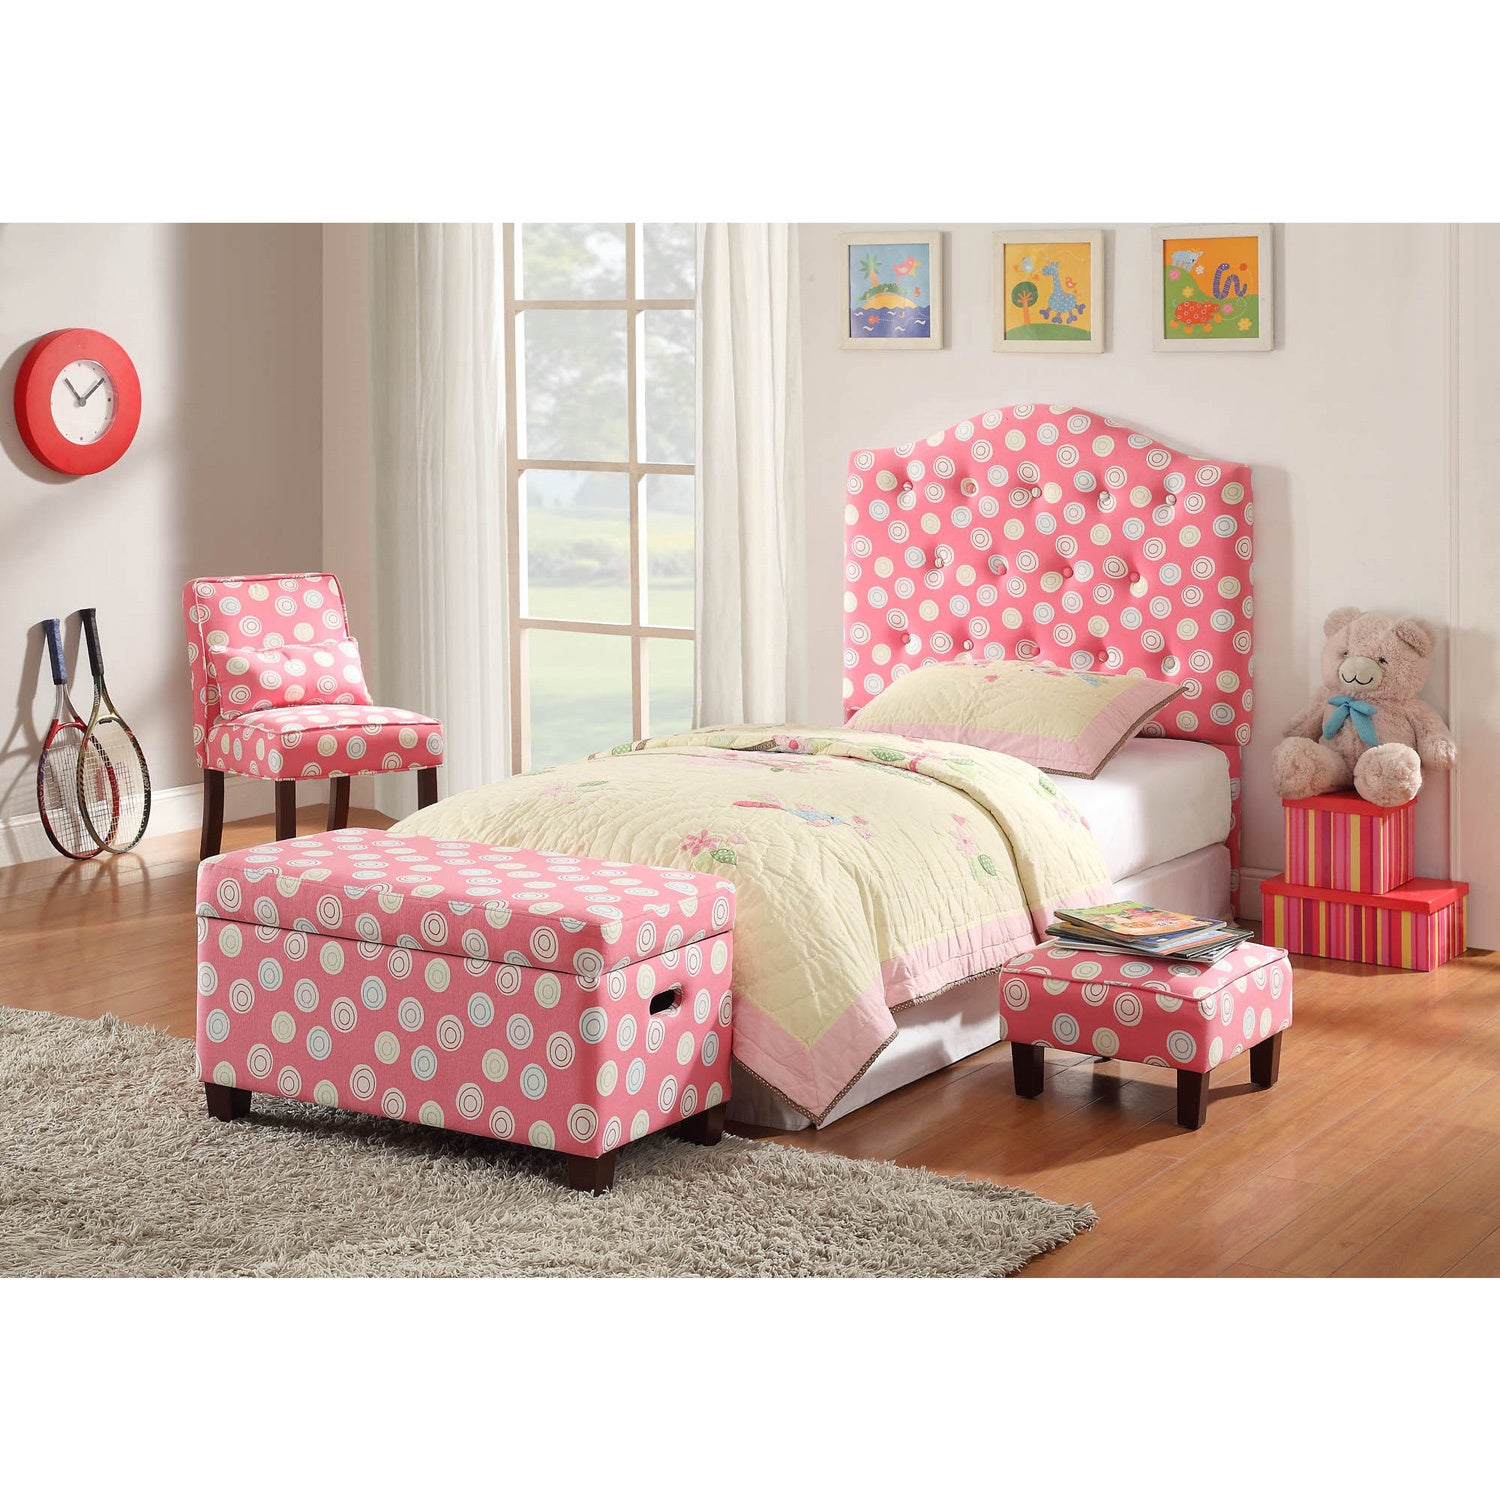 fabric size quotations transitional alibaba shopping headboard guides padded line pink on get twin deals at cheap com find